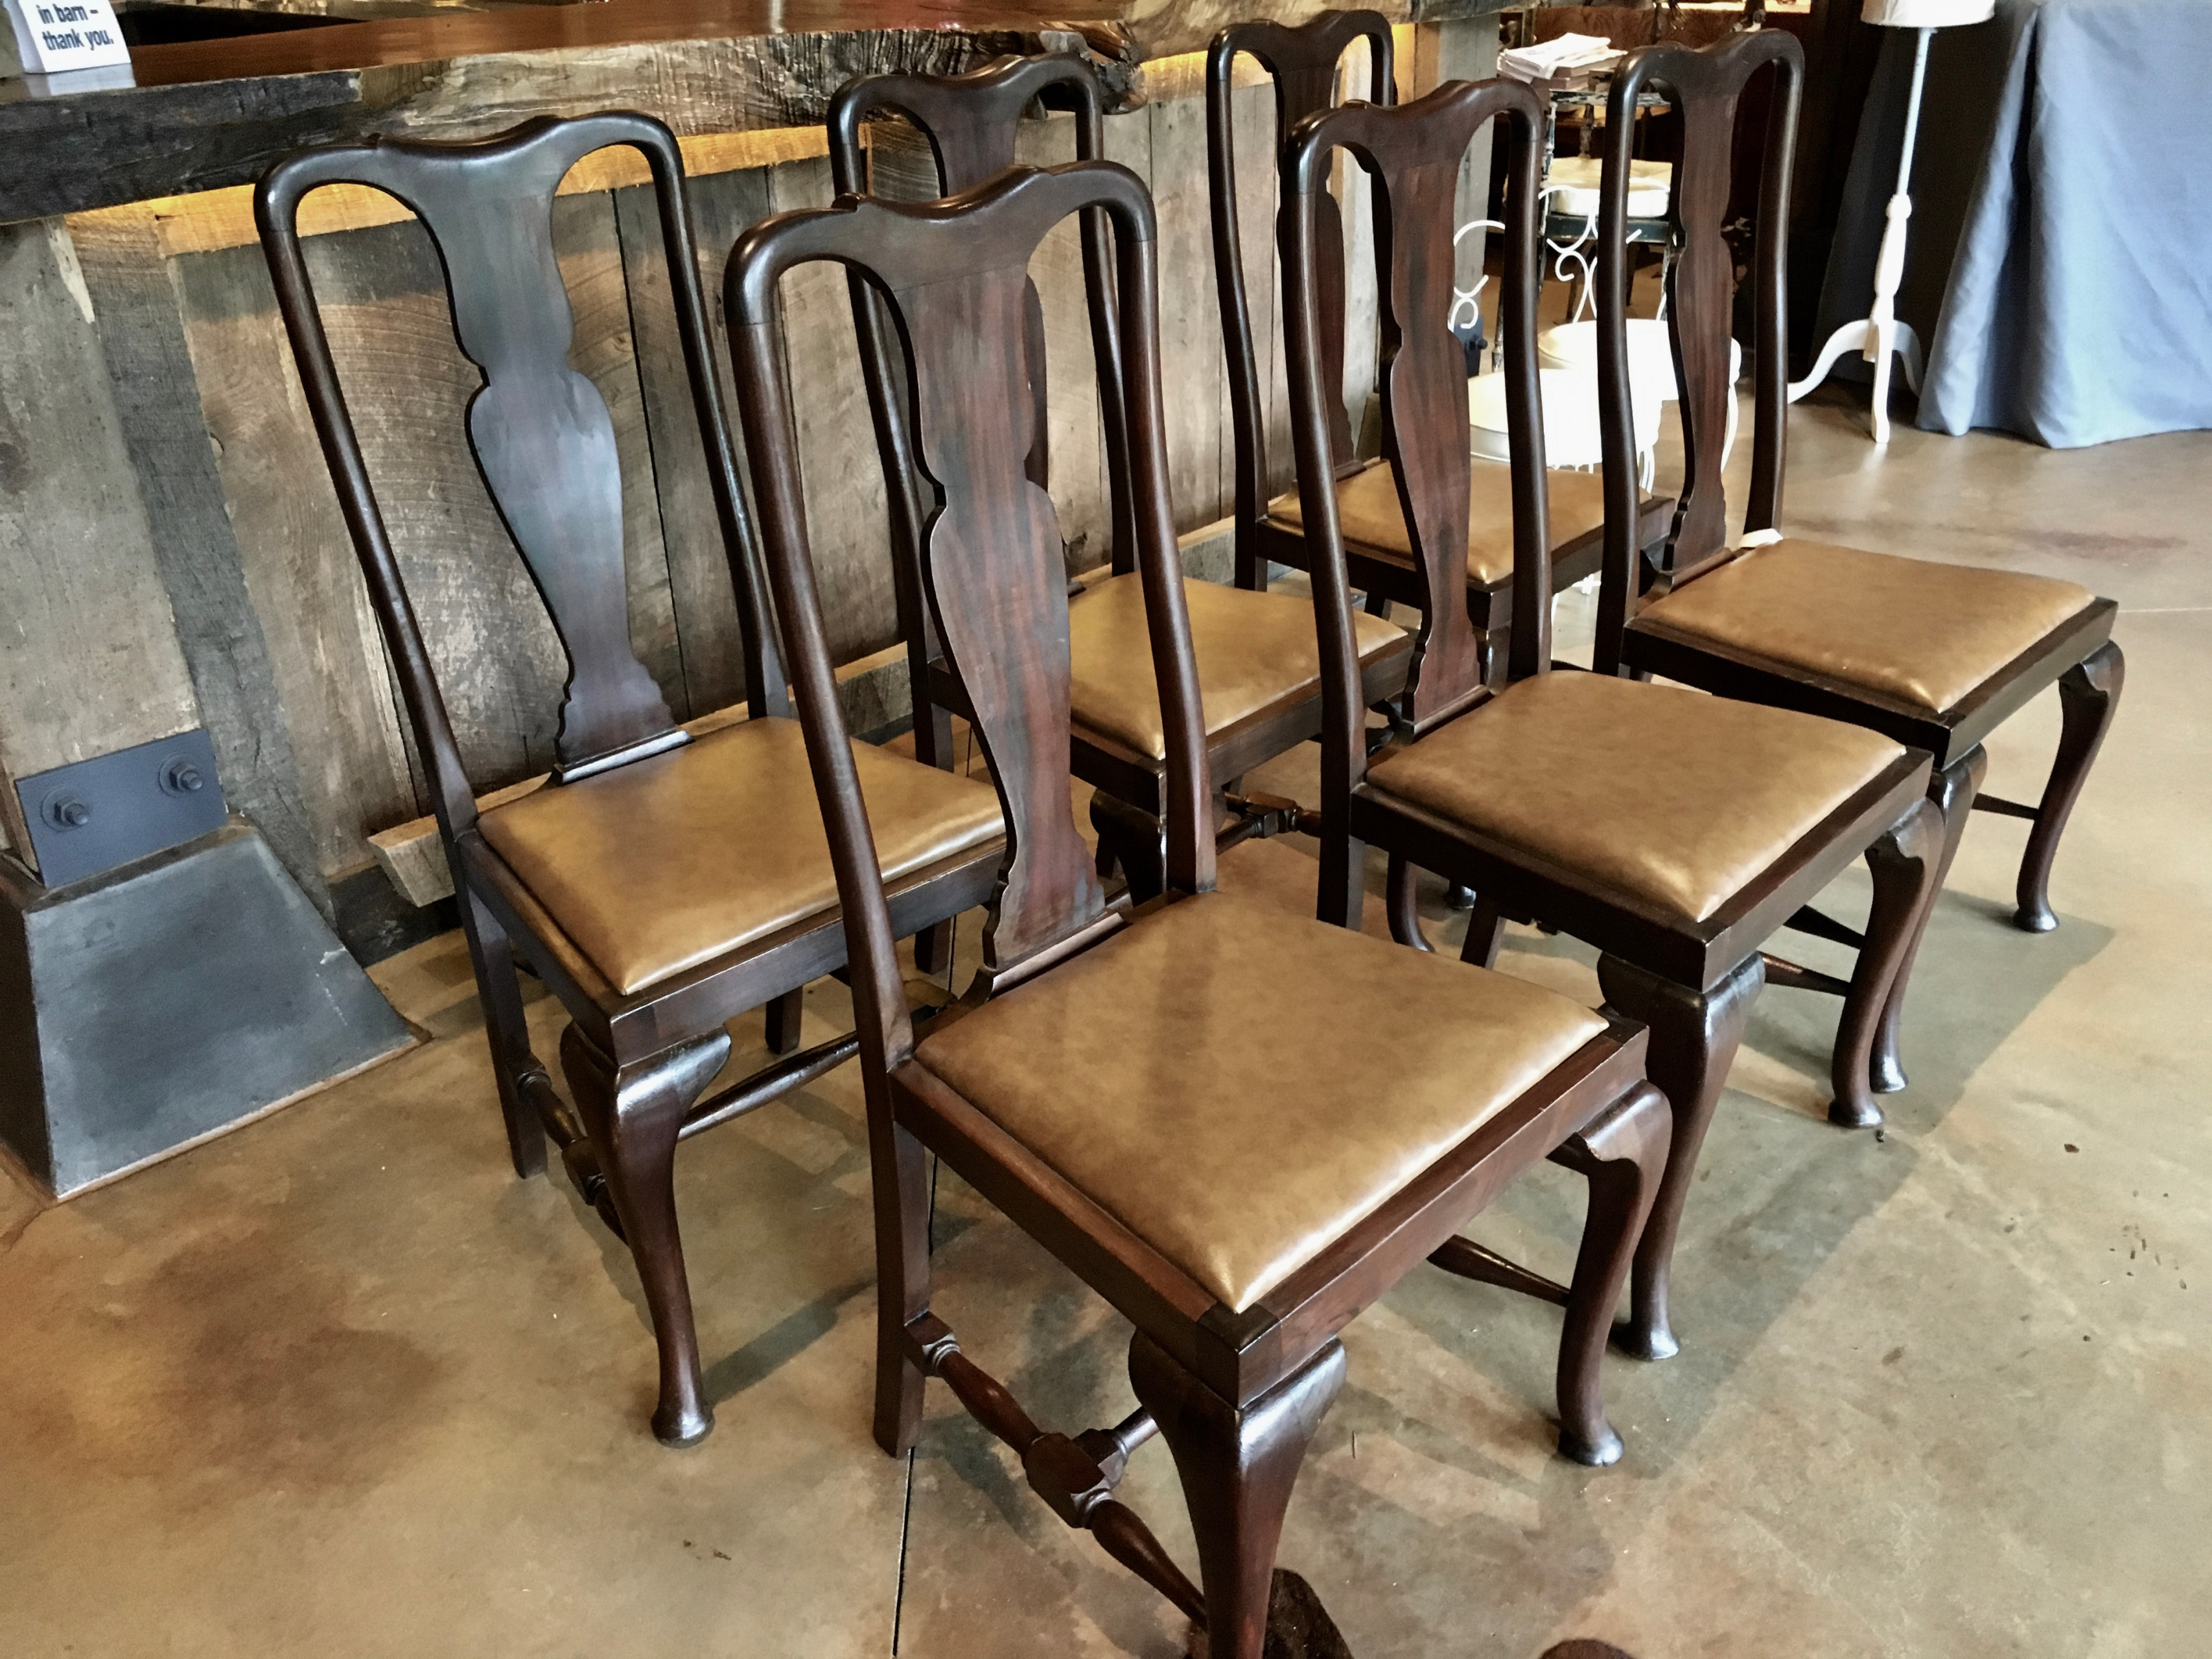 Swell Queen Anne Chairs Set Of 6 Chairs Antique Queen Anne Gamerscity Chair Design For Home Gamerscityorg